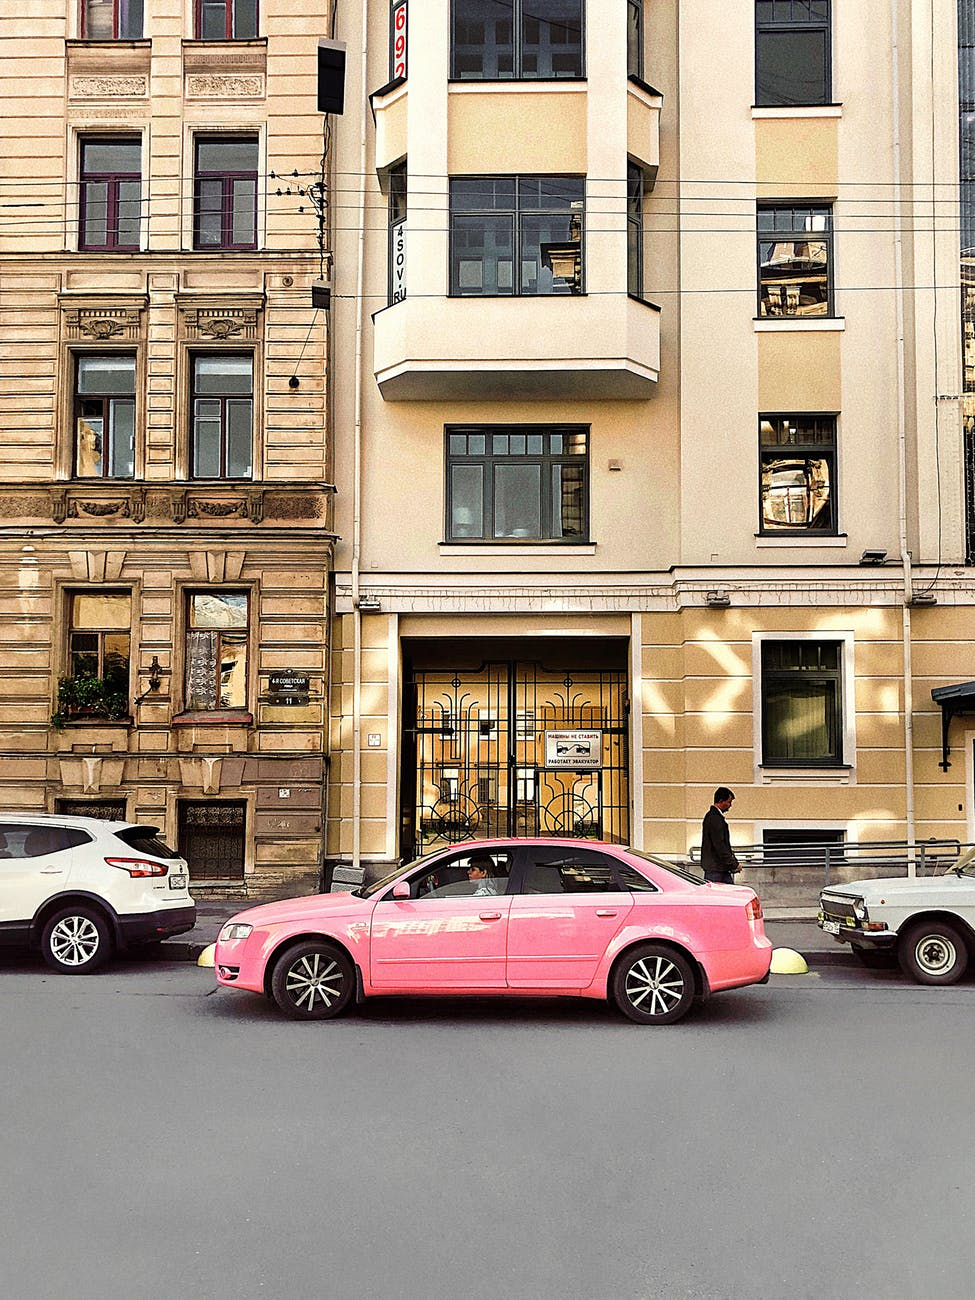 pink car in front of building